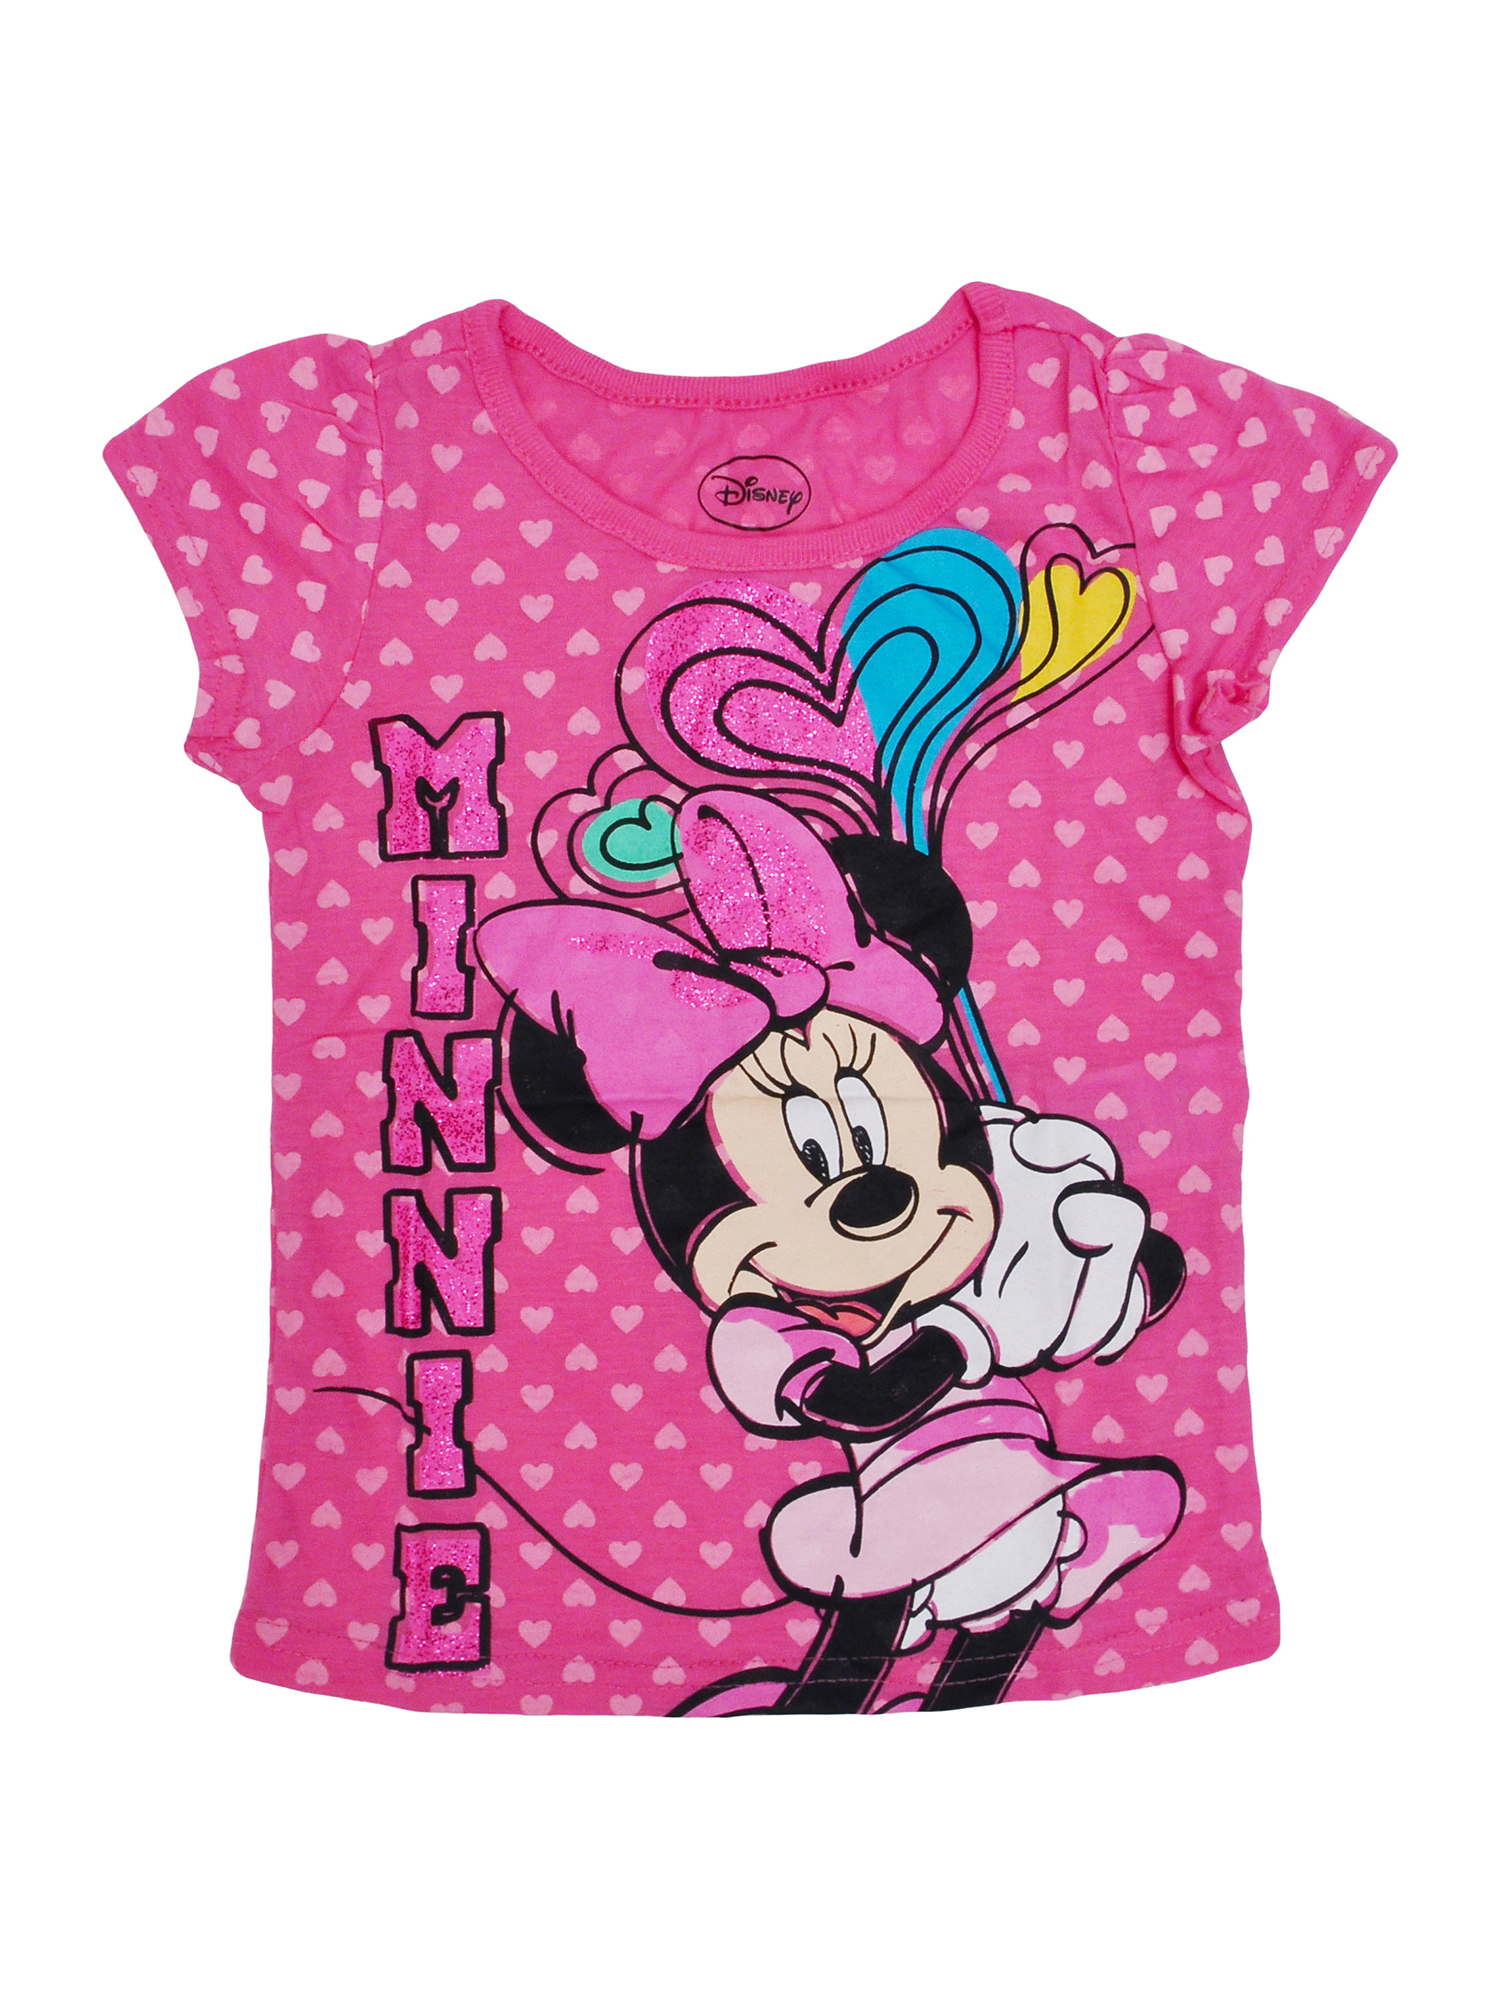 Girls Minnie Mouse Hearts Glitter Short Sleeve T-Shirt Pink